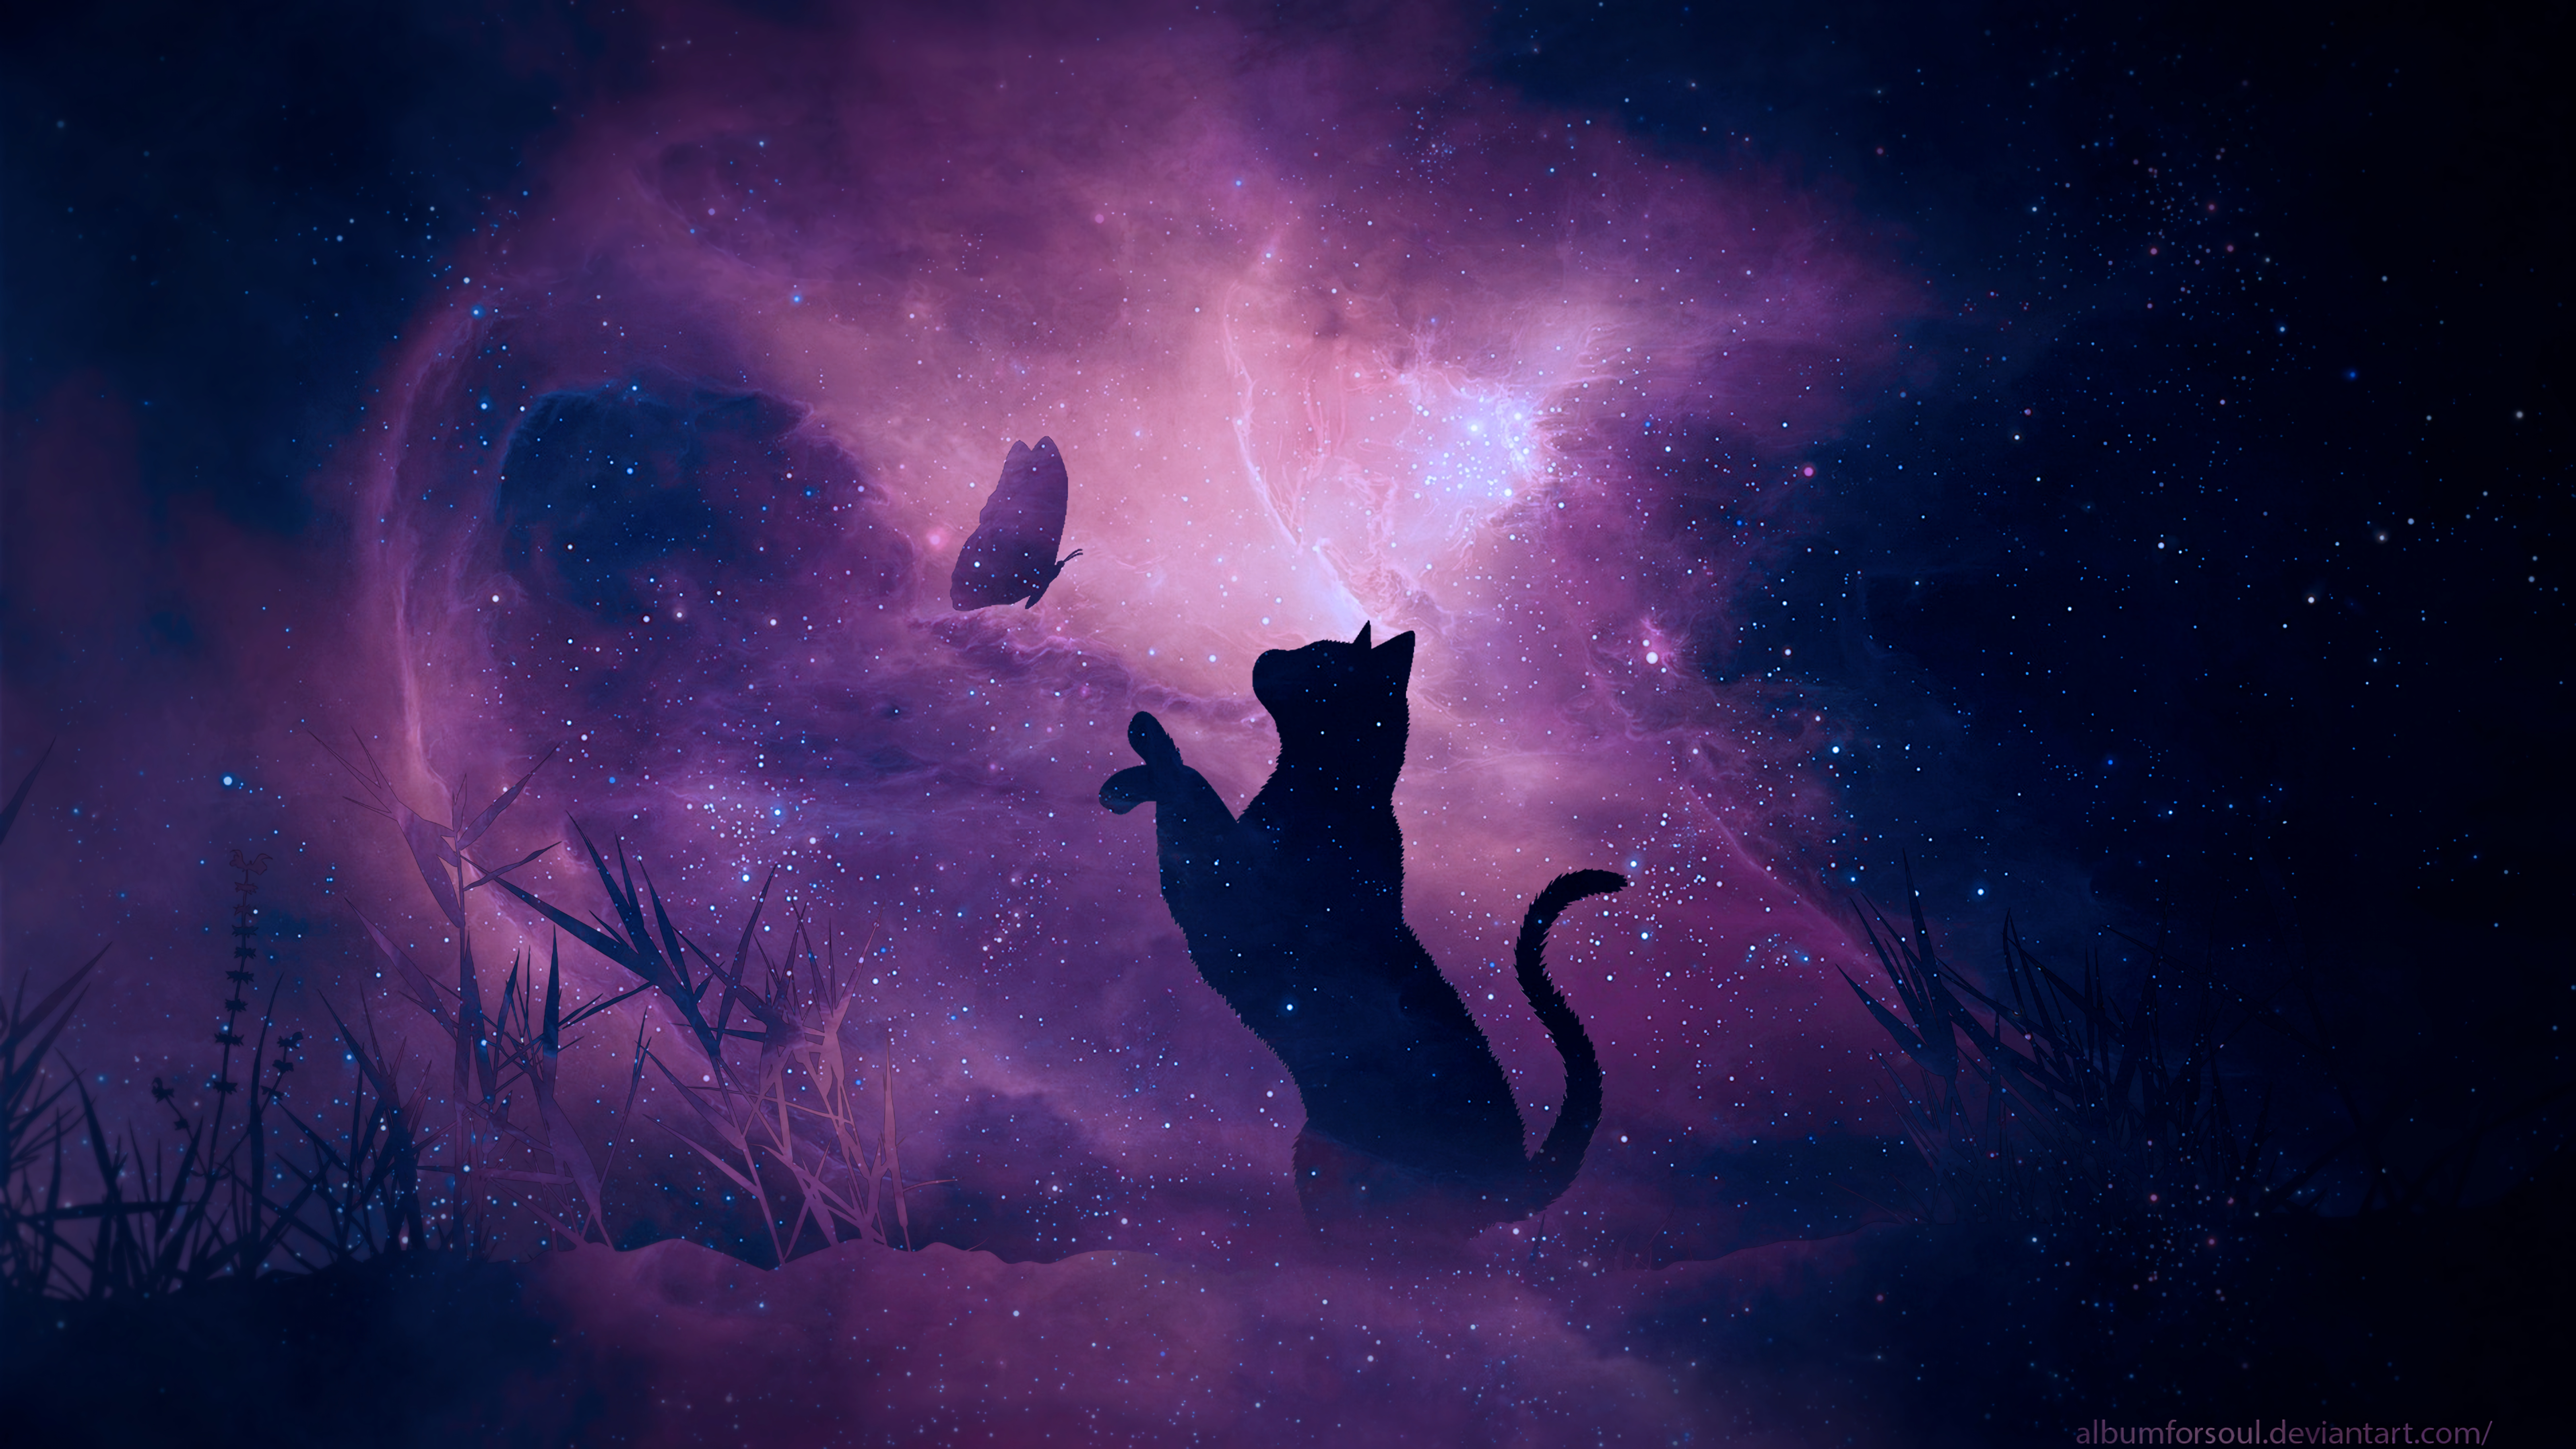 137119 download wallpaper Cat, Art, Stars, Shine, Silhouette, Starry Sky, Brilliance, Galaxy, Butterfly screensavers and pictures for free